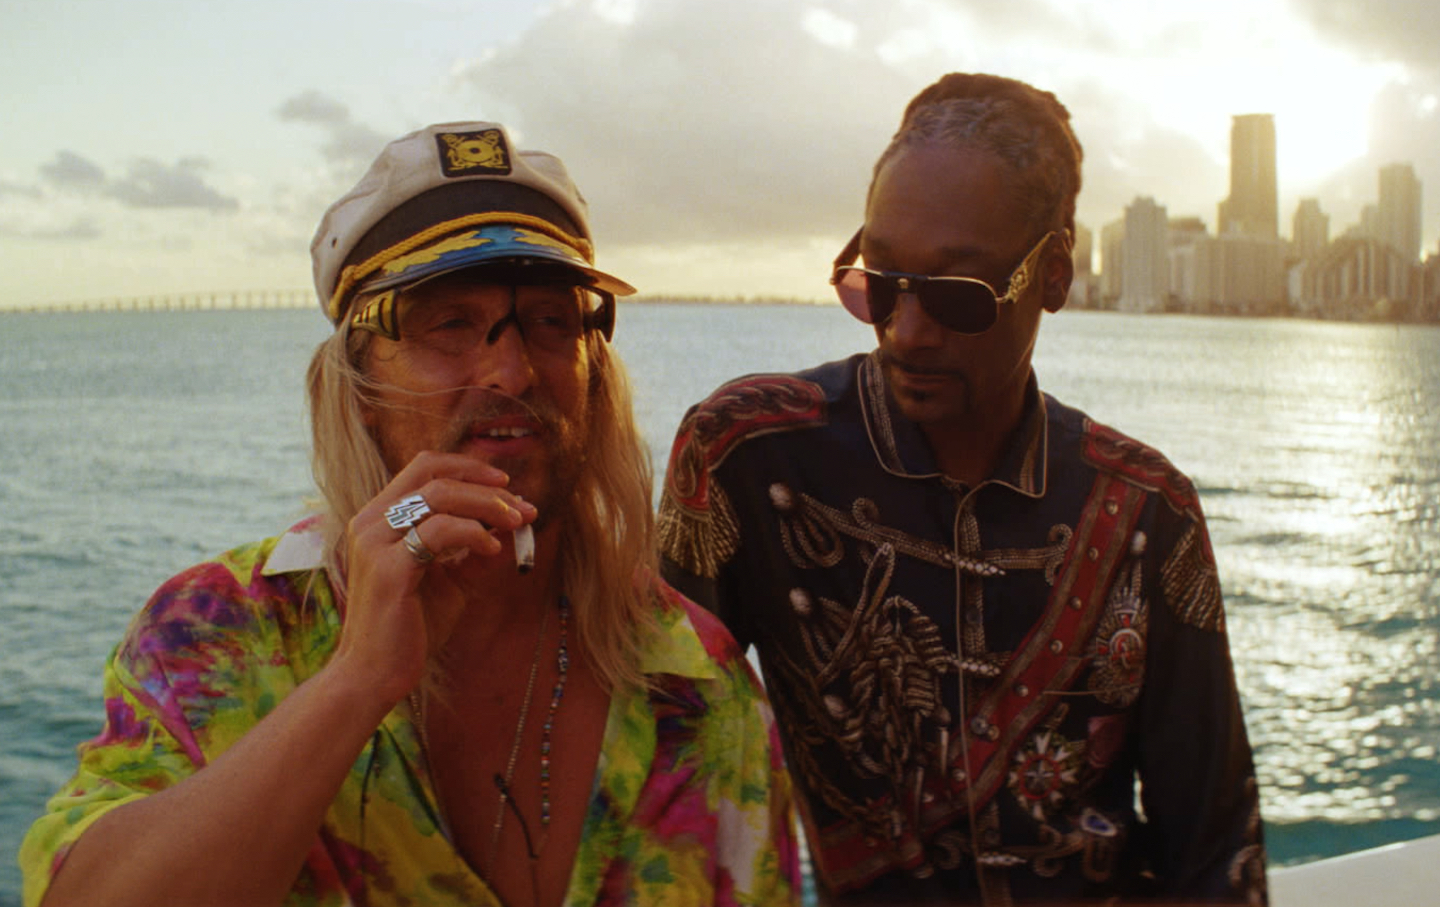 Moondog (Matthew McConaughey) and Lingerie (Snoop Dogg) in THE BEACH BUM. Courtesy of NEON and VICE